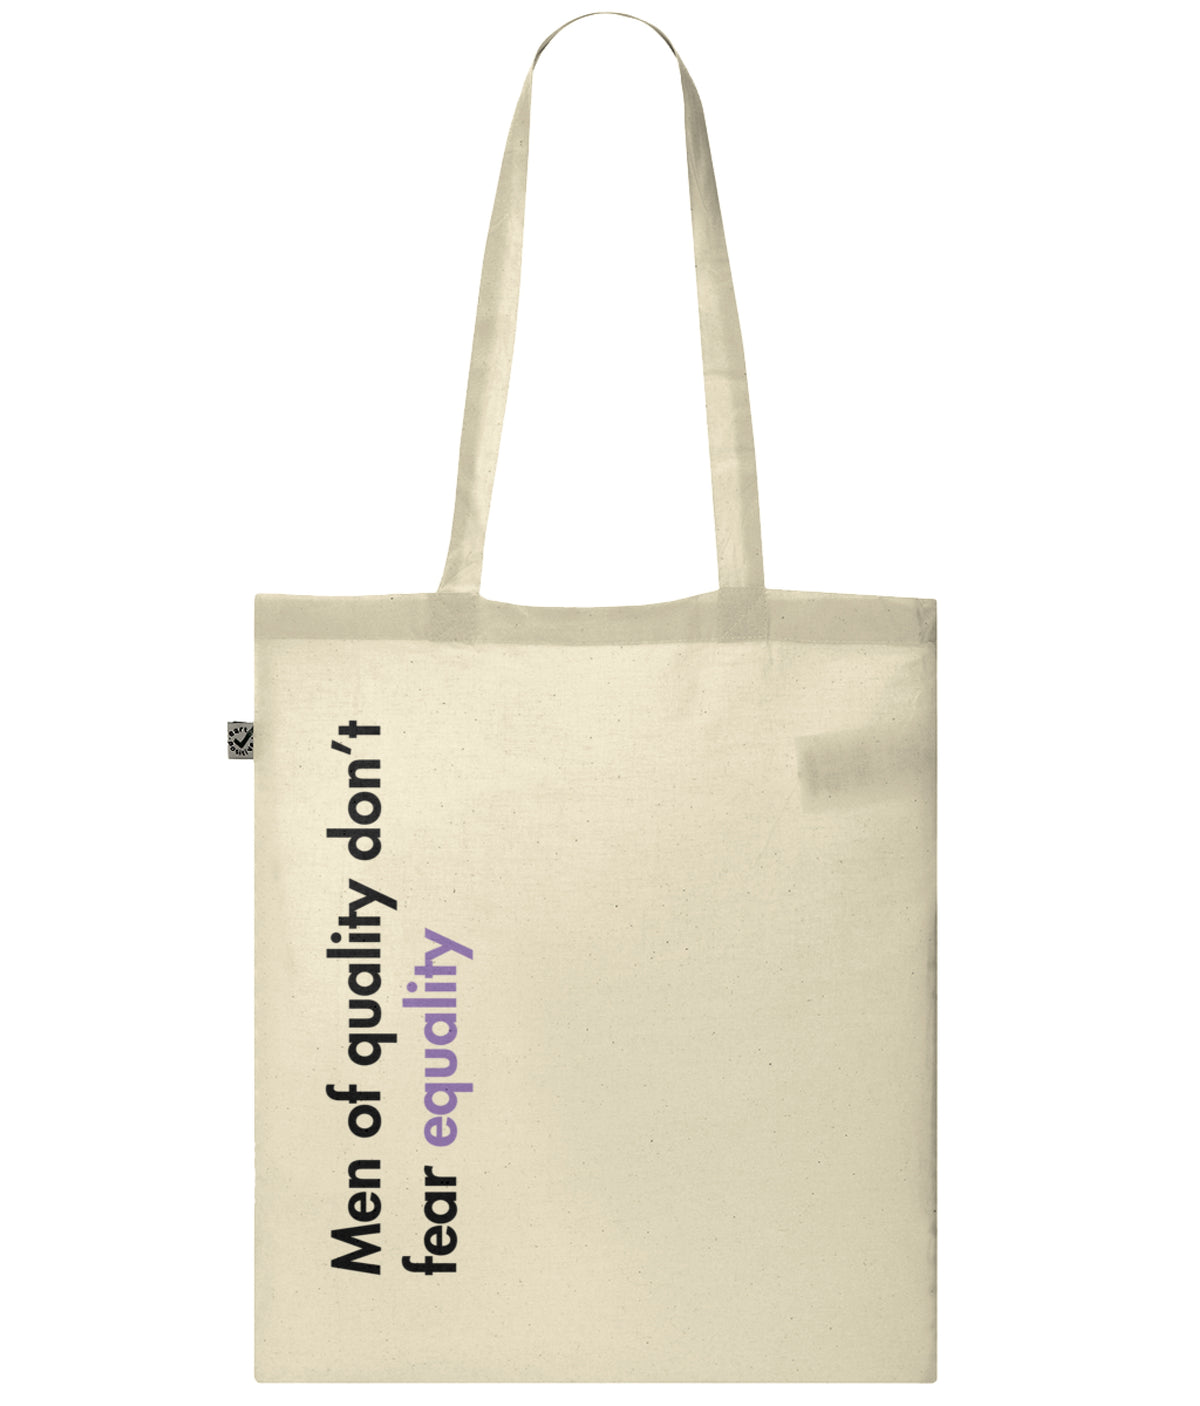 Men Of Quality Don't Fear Equality Organic Combed Cotton Tote Bag Natural